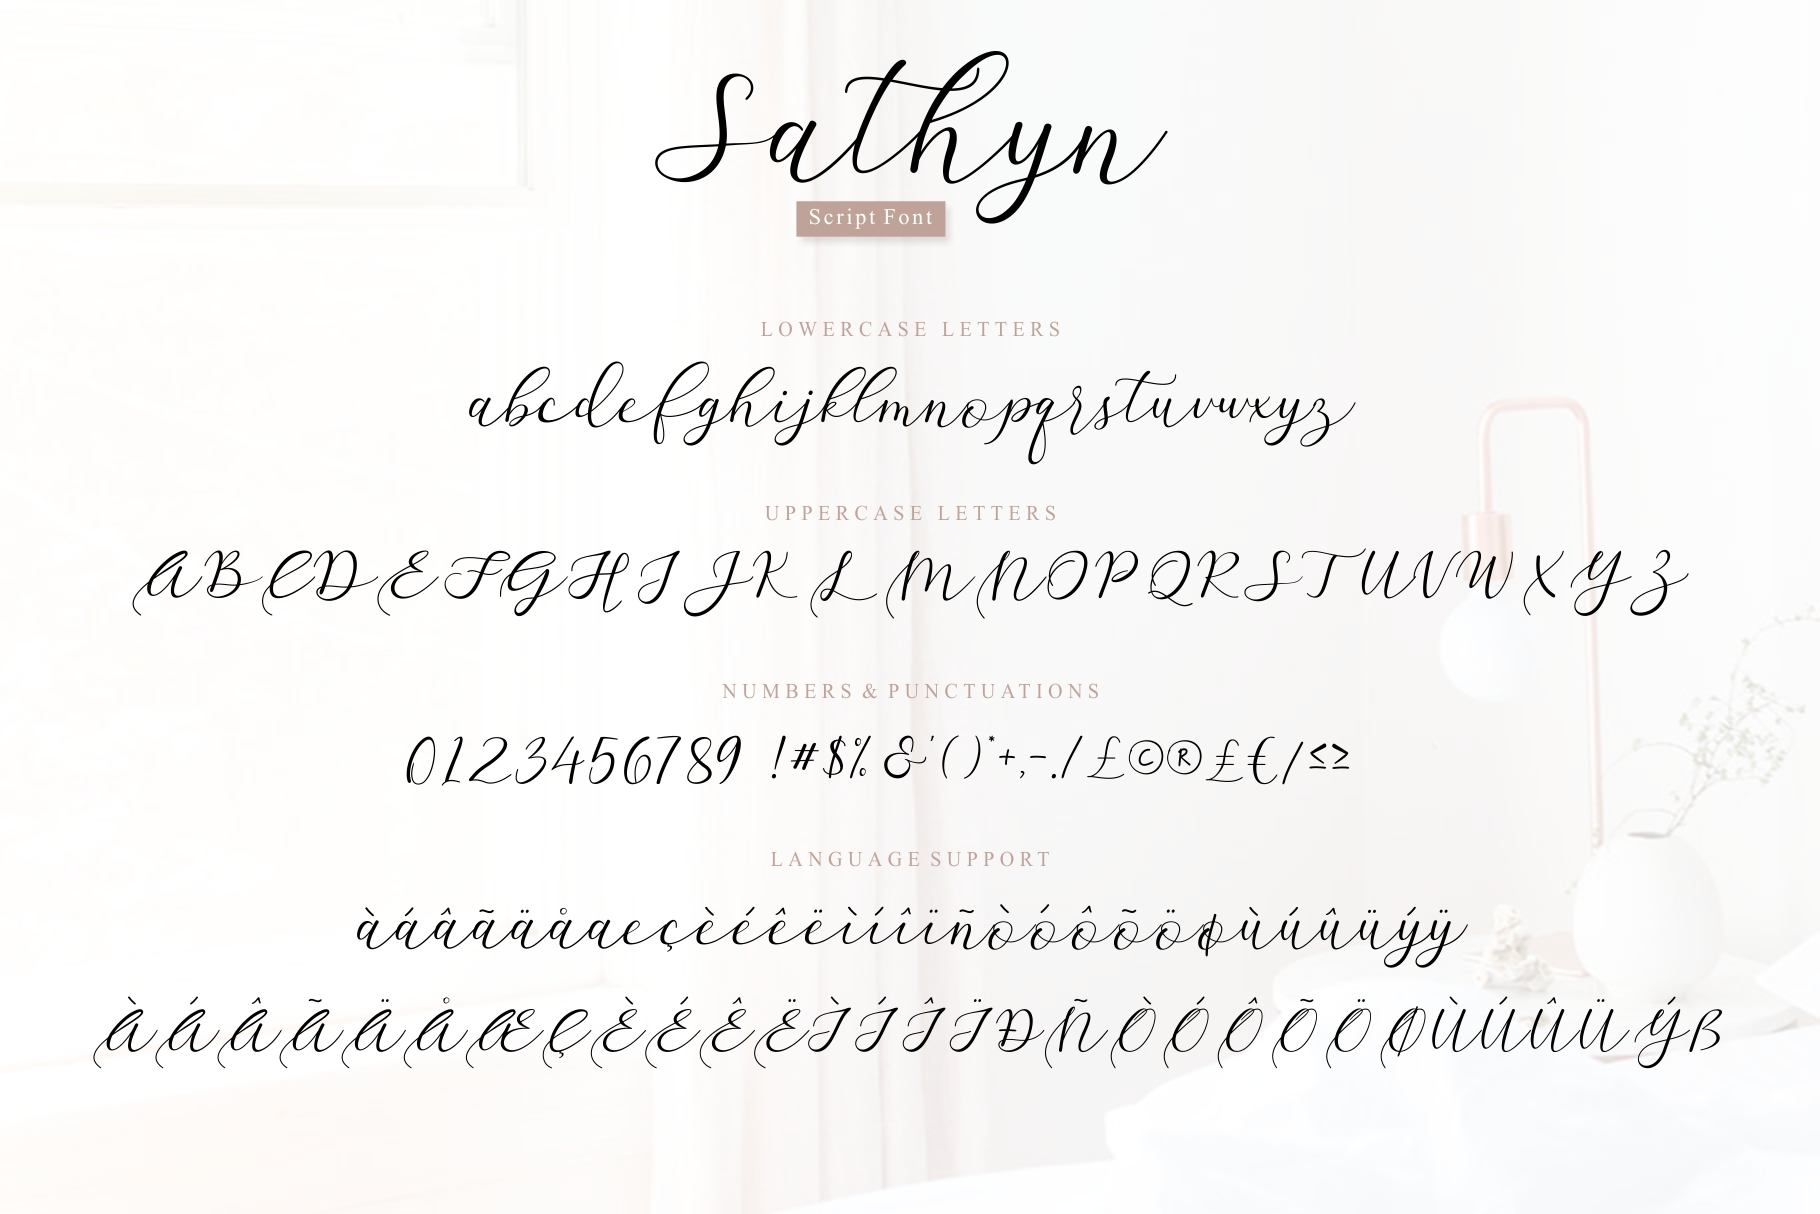 Sathyn Lovely Script Font example image 8